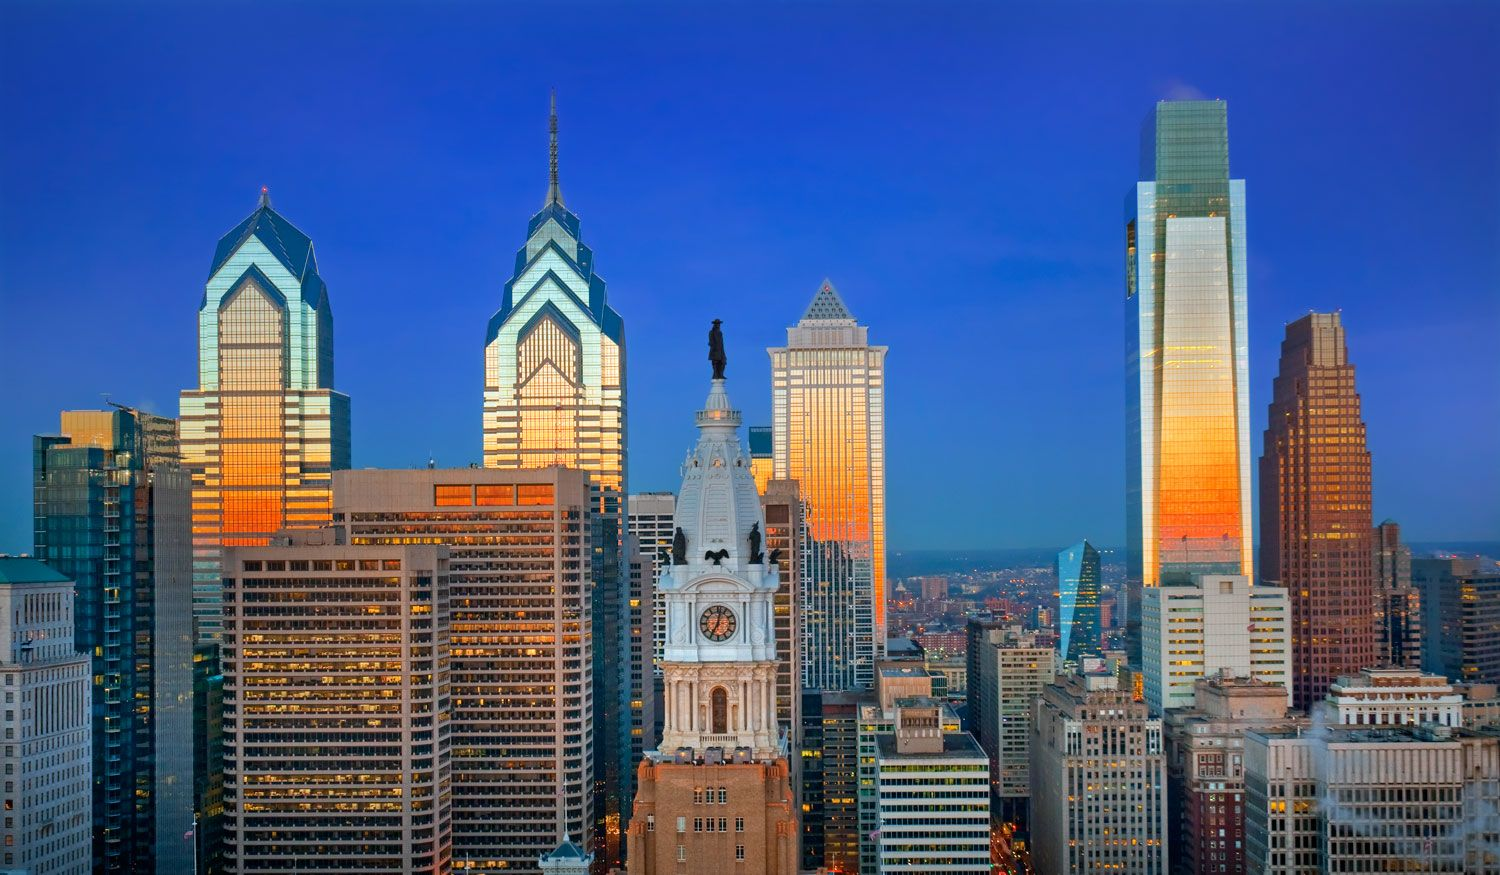 Philadelphia Declared The Best Place To Visit In The U.S ...